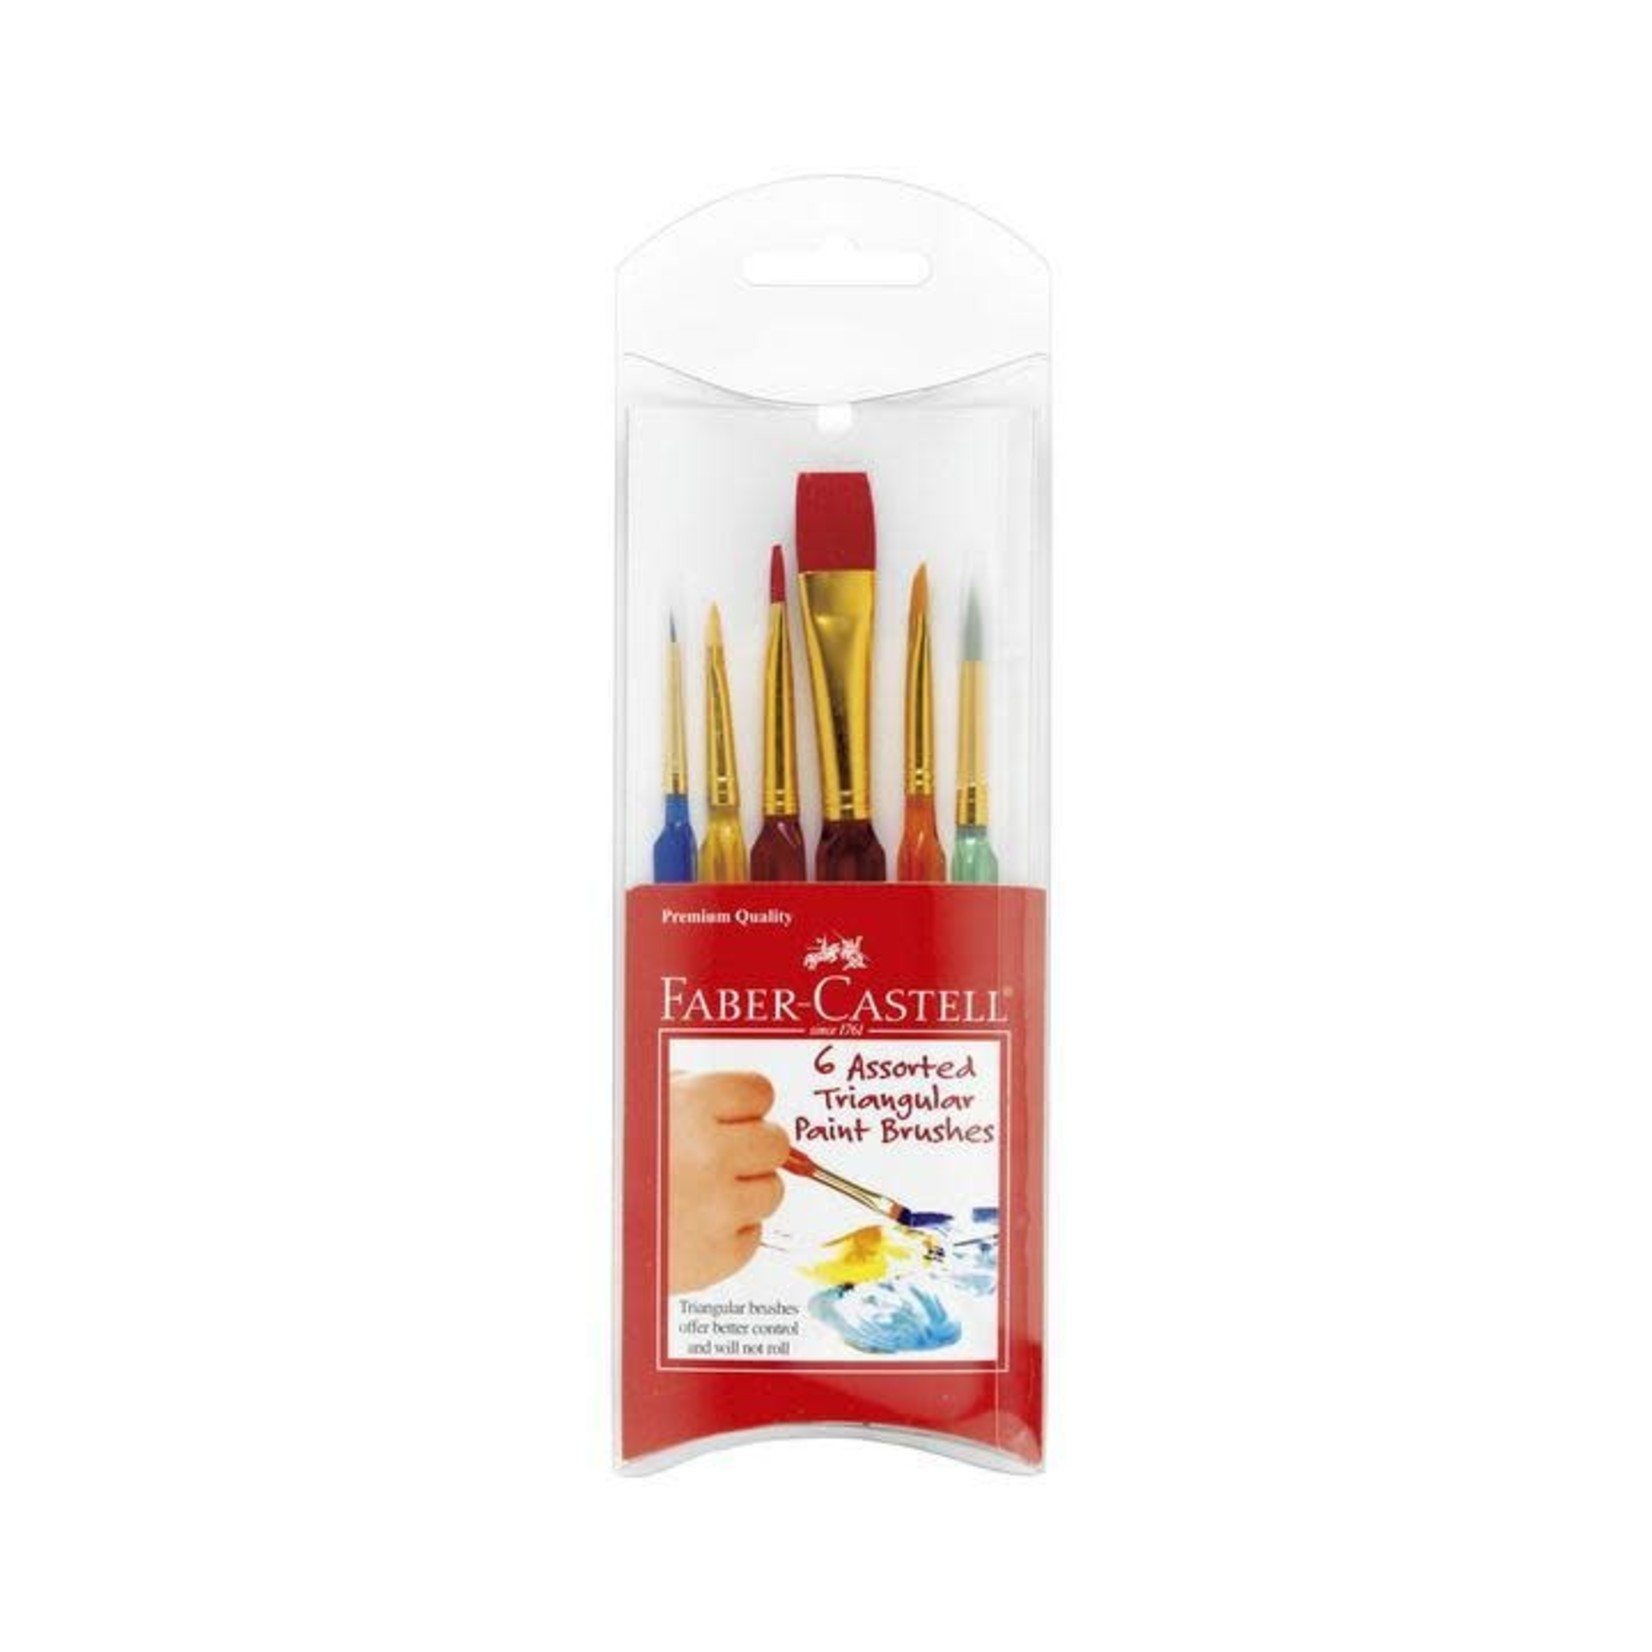 FABER-CASTELL 6 TRIANGULAR PAINT BRUSHES